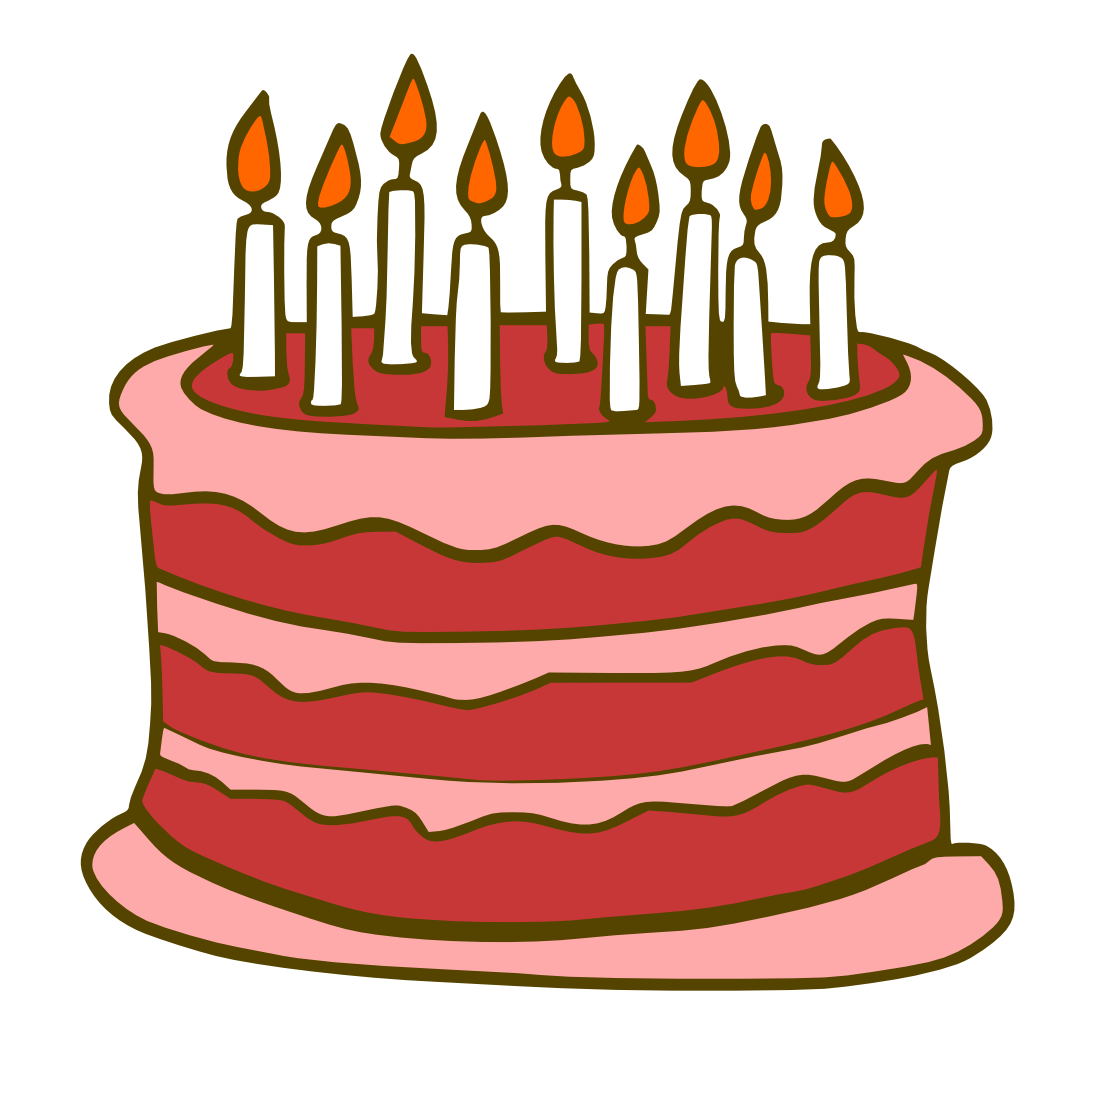 Cartoon Pics Of Birthday Cakes : Birthday Cake Graphic - ClipArt Best